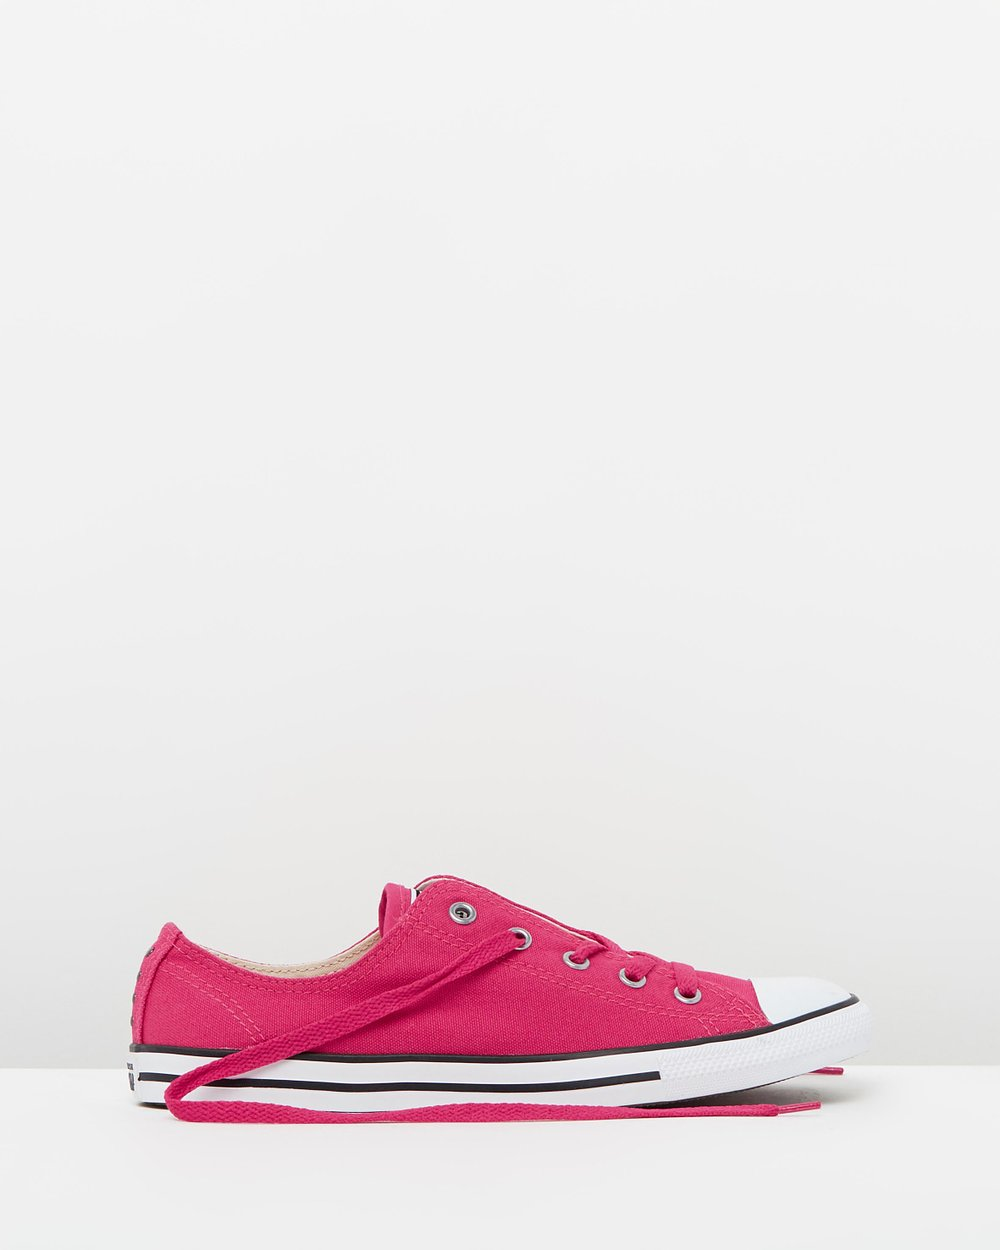 70dc1a85a718 Chuck Taylor All Star Dainty Ox - Women s by Converse Online